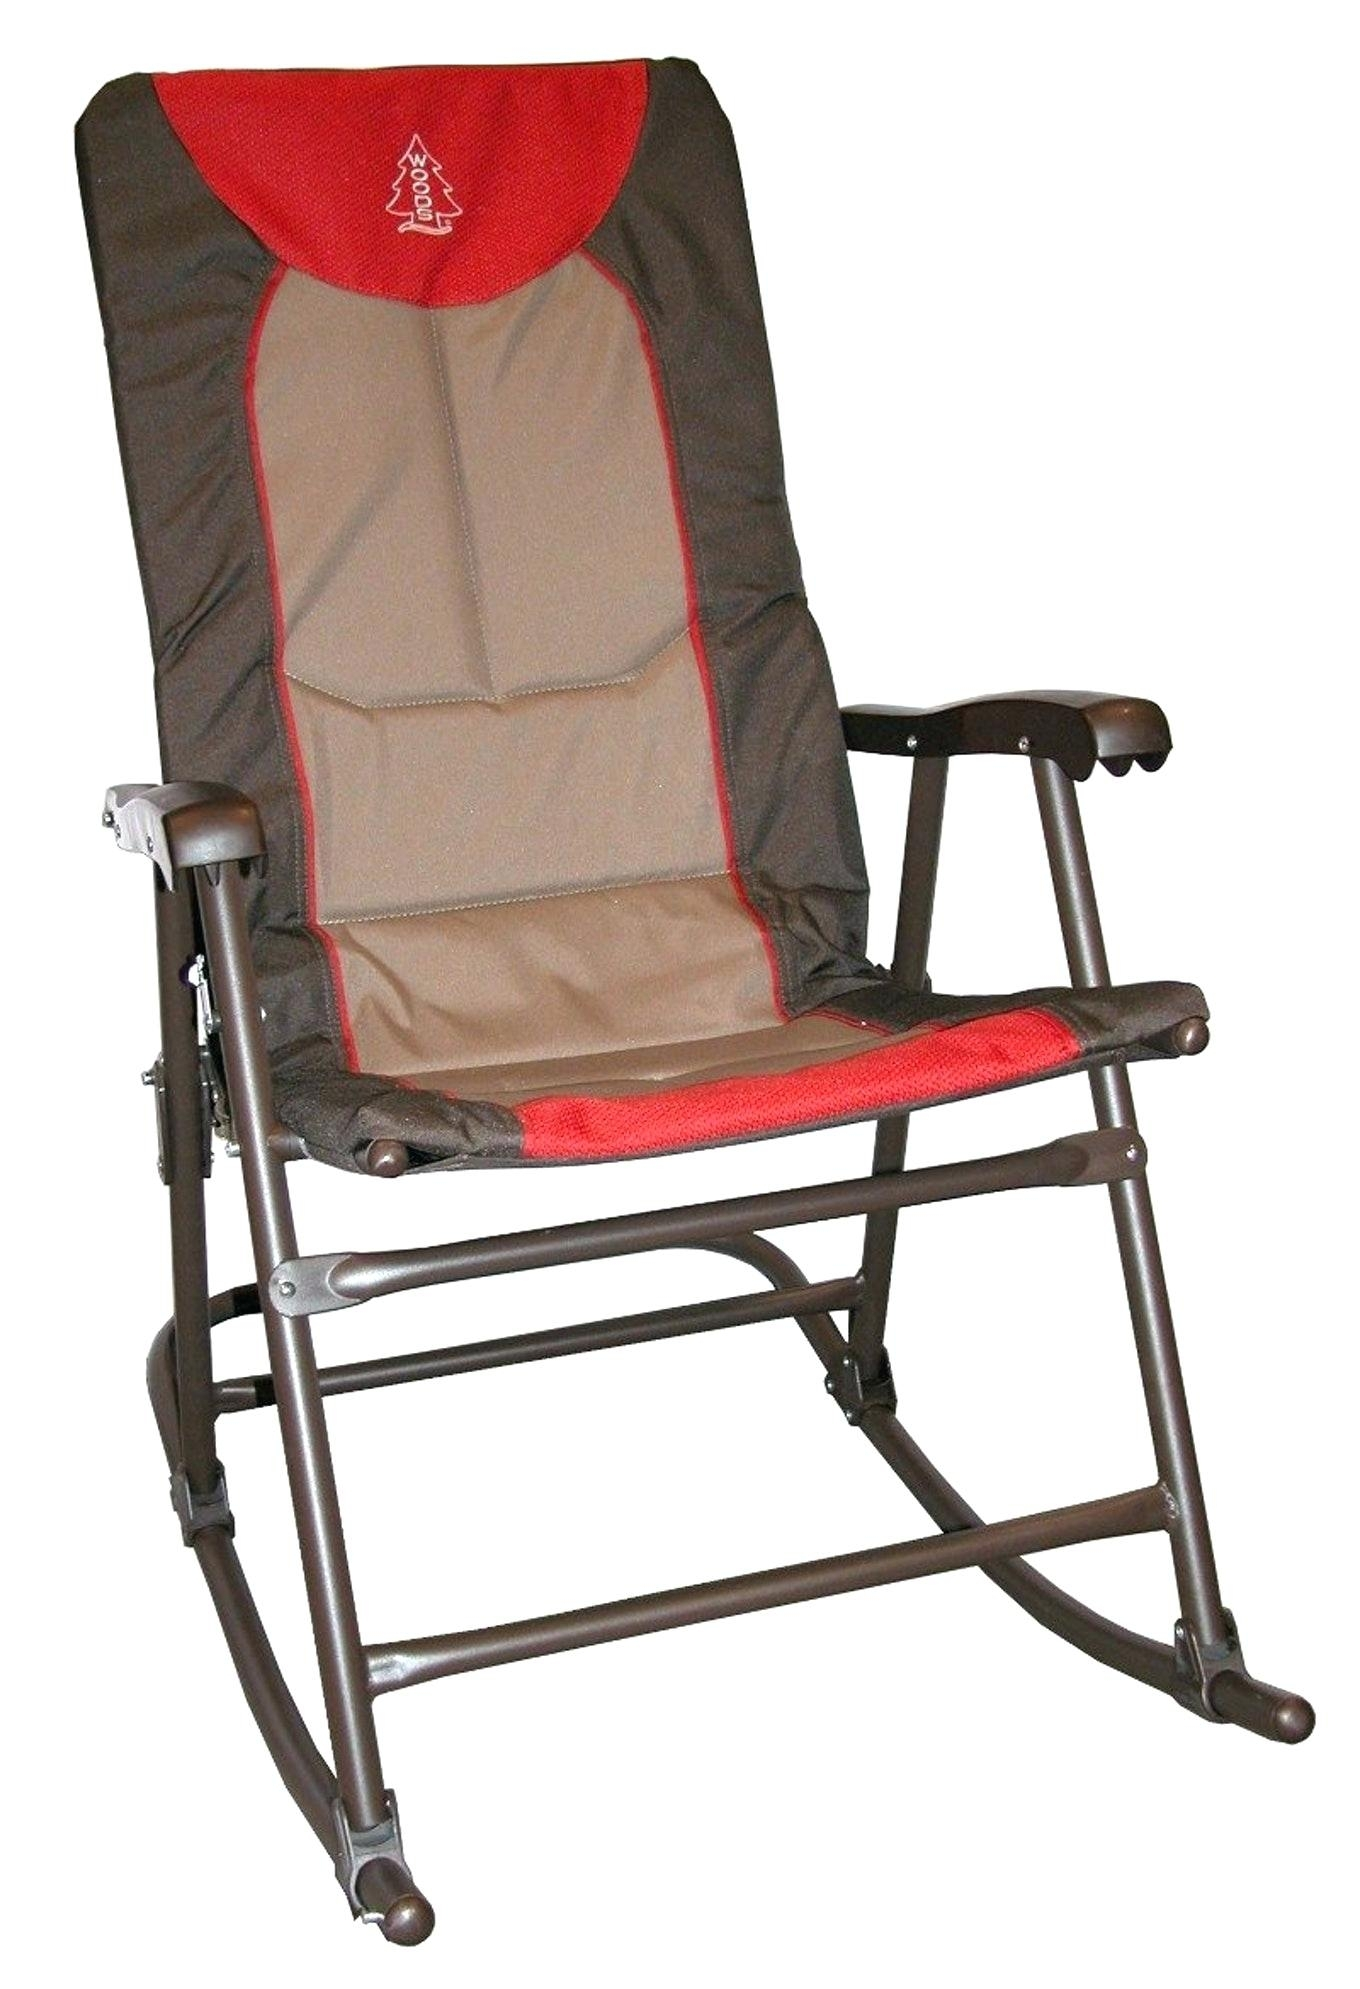 Folding Rocking Chair Costco Vintage Aluminum At Camping World For Rocking Chairs At Costco (#5 of 15)